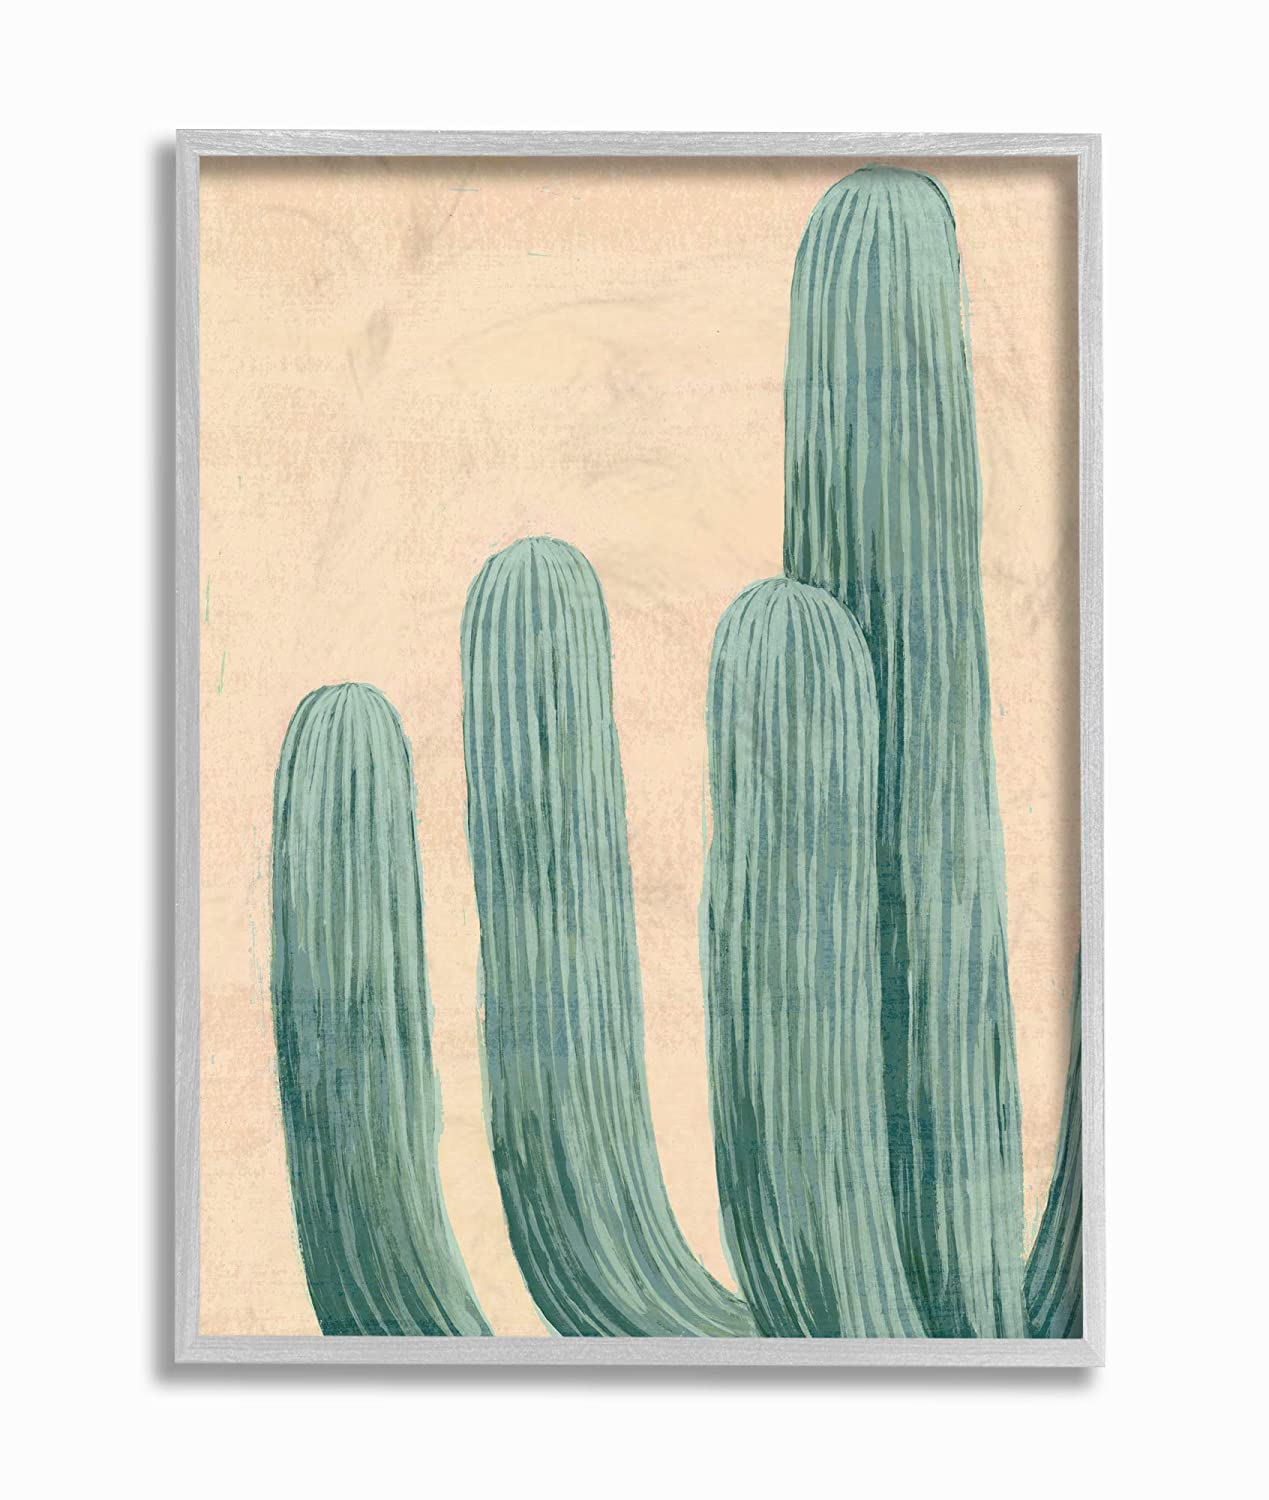 The Stupell Home Decor Painted Dusty Cacti Framed Giclee Texturized Art 11x14 Multi-Color